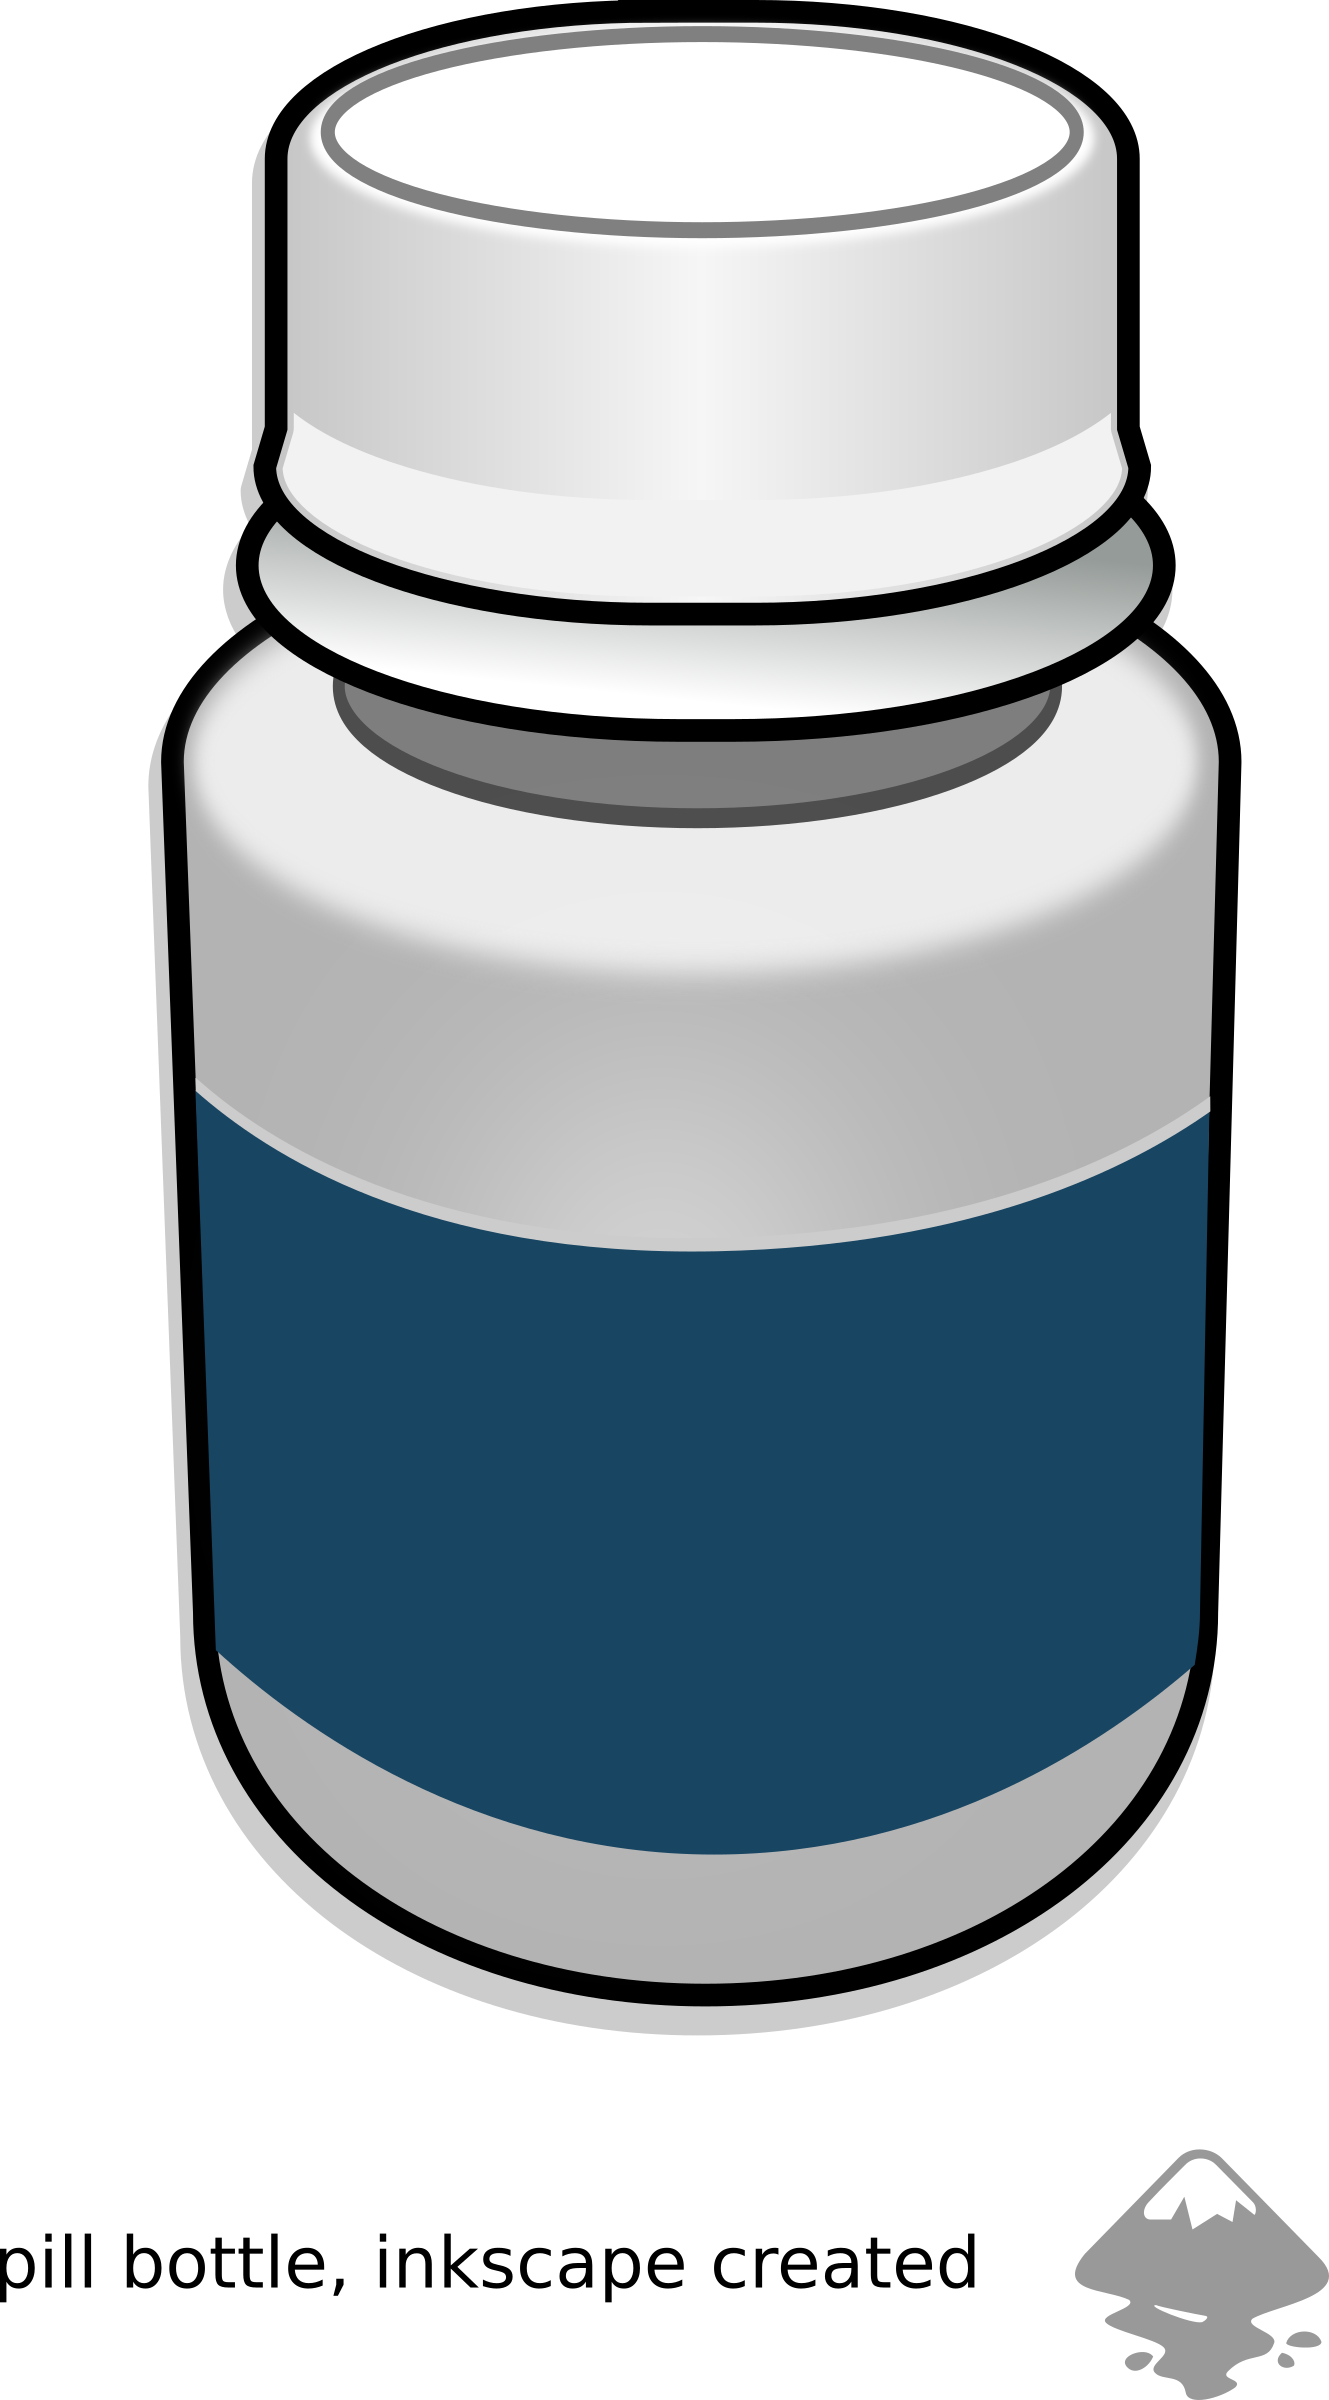 pill bottle by voyeg3r